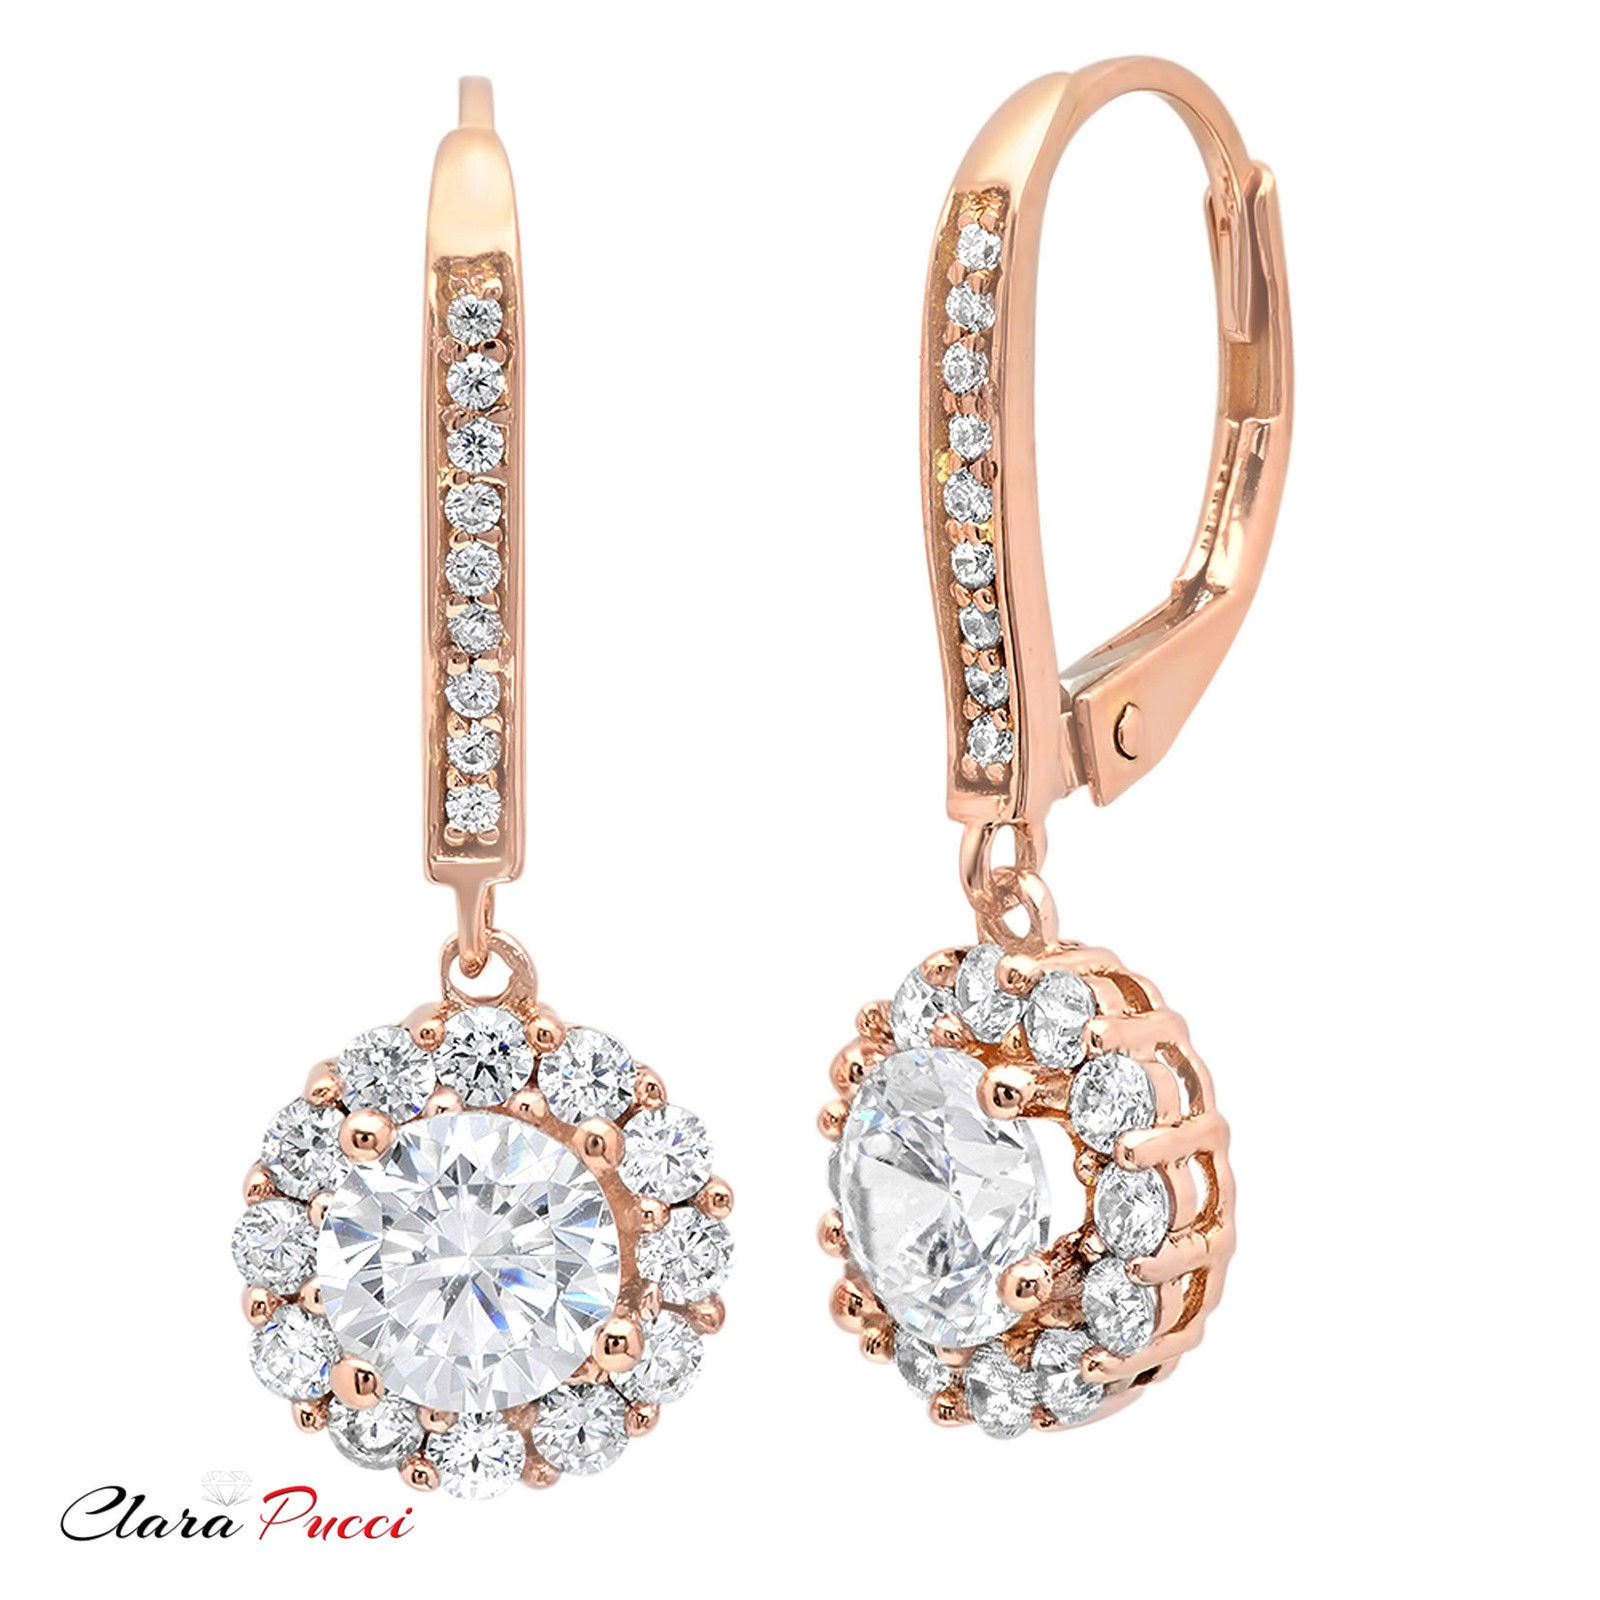 3 45CT Sim Round CUT Halo PAVE DROP DANGLE LEVERBACK EARRINGS 14K